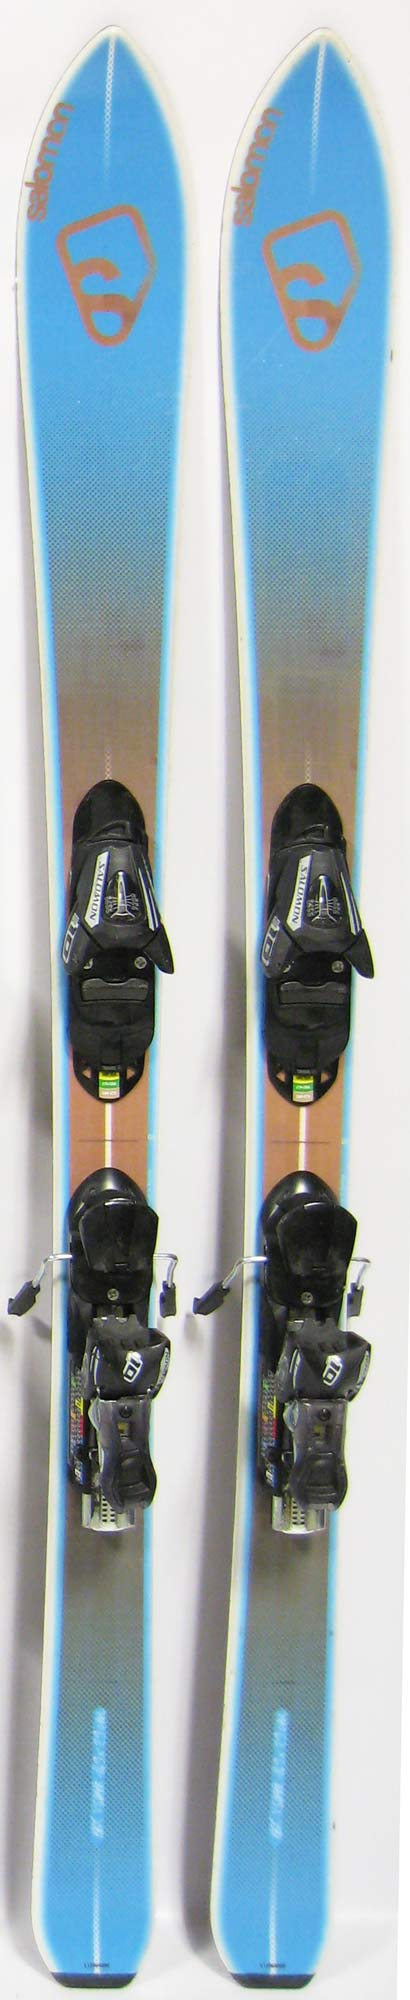 Topsheets of 2012 Salomon BBR 7.9 Skis For Sale